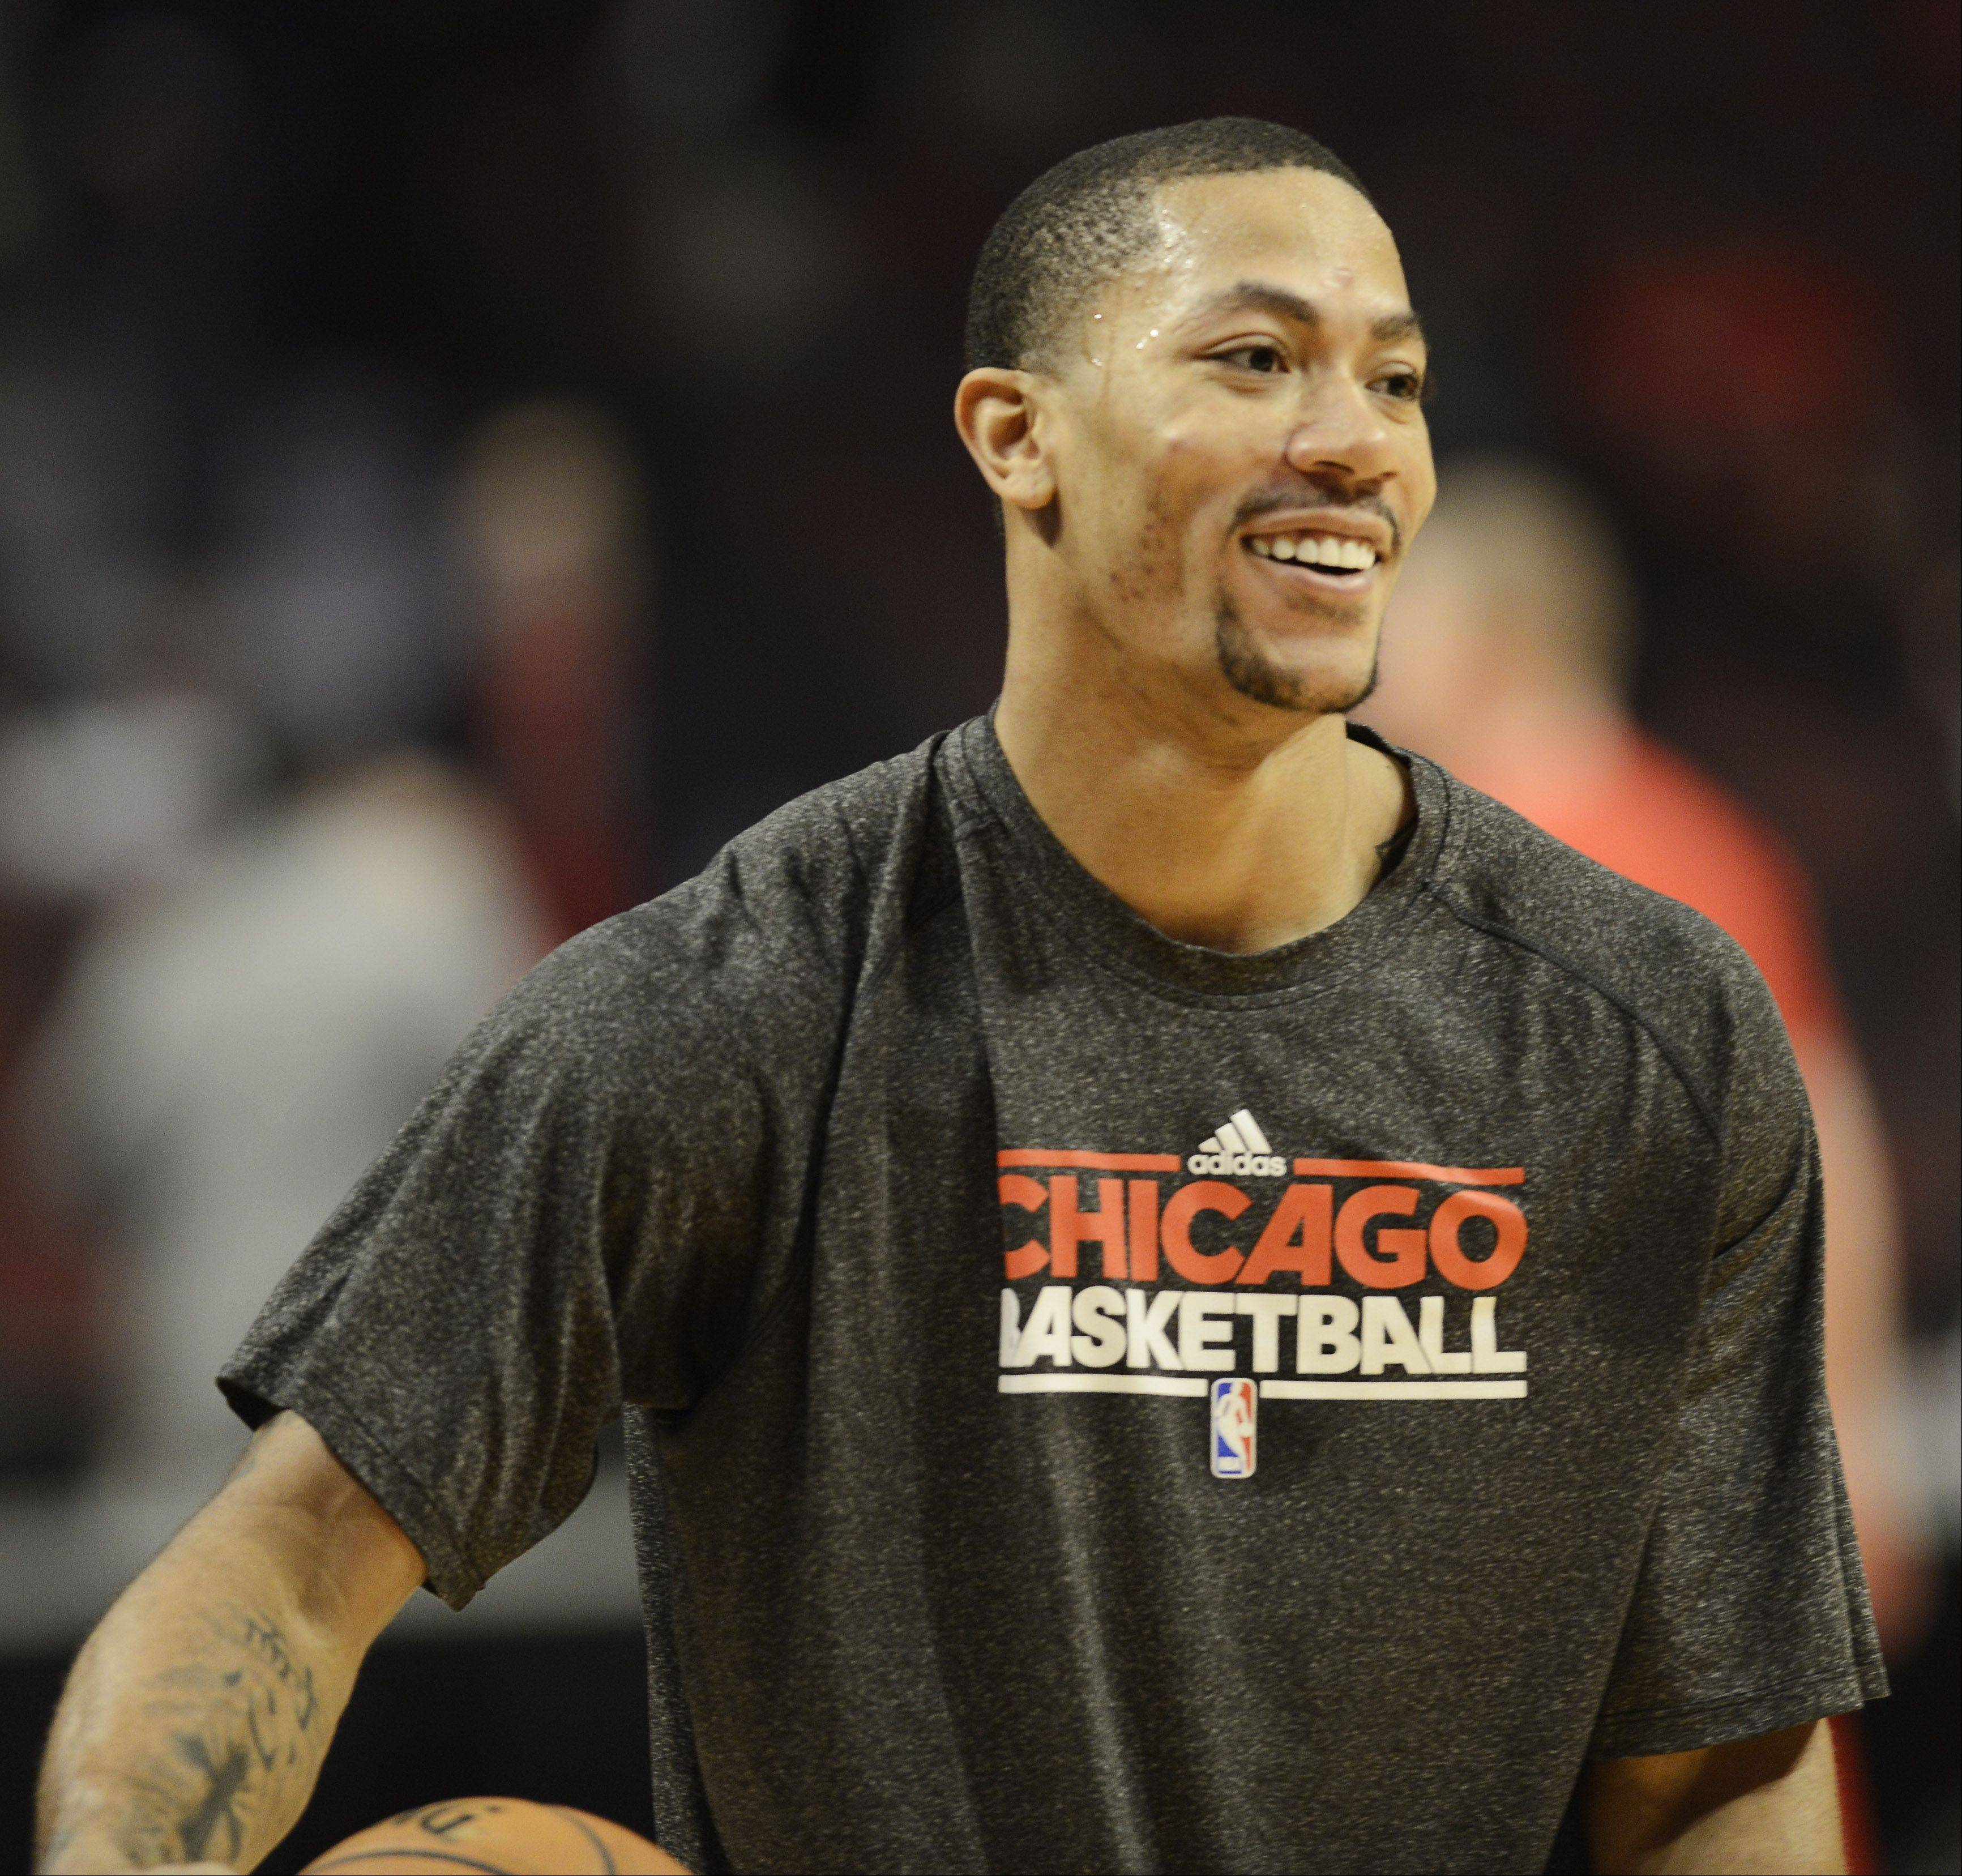 Injured Bulls guard Derrick Rose smiles while shooting before Game 6 against the Brooklyn Nets. Rose said Monday there is still a chance he might return during the playoffs.